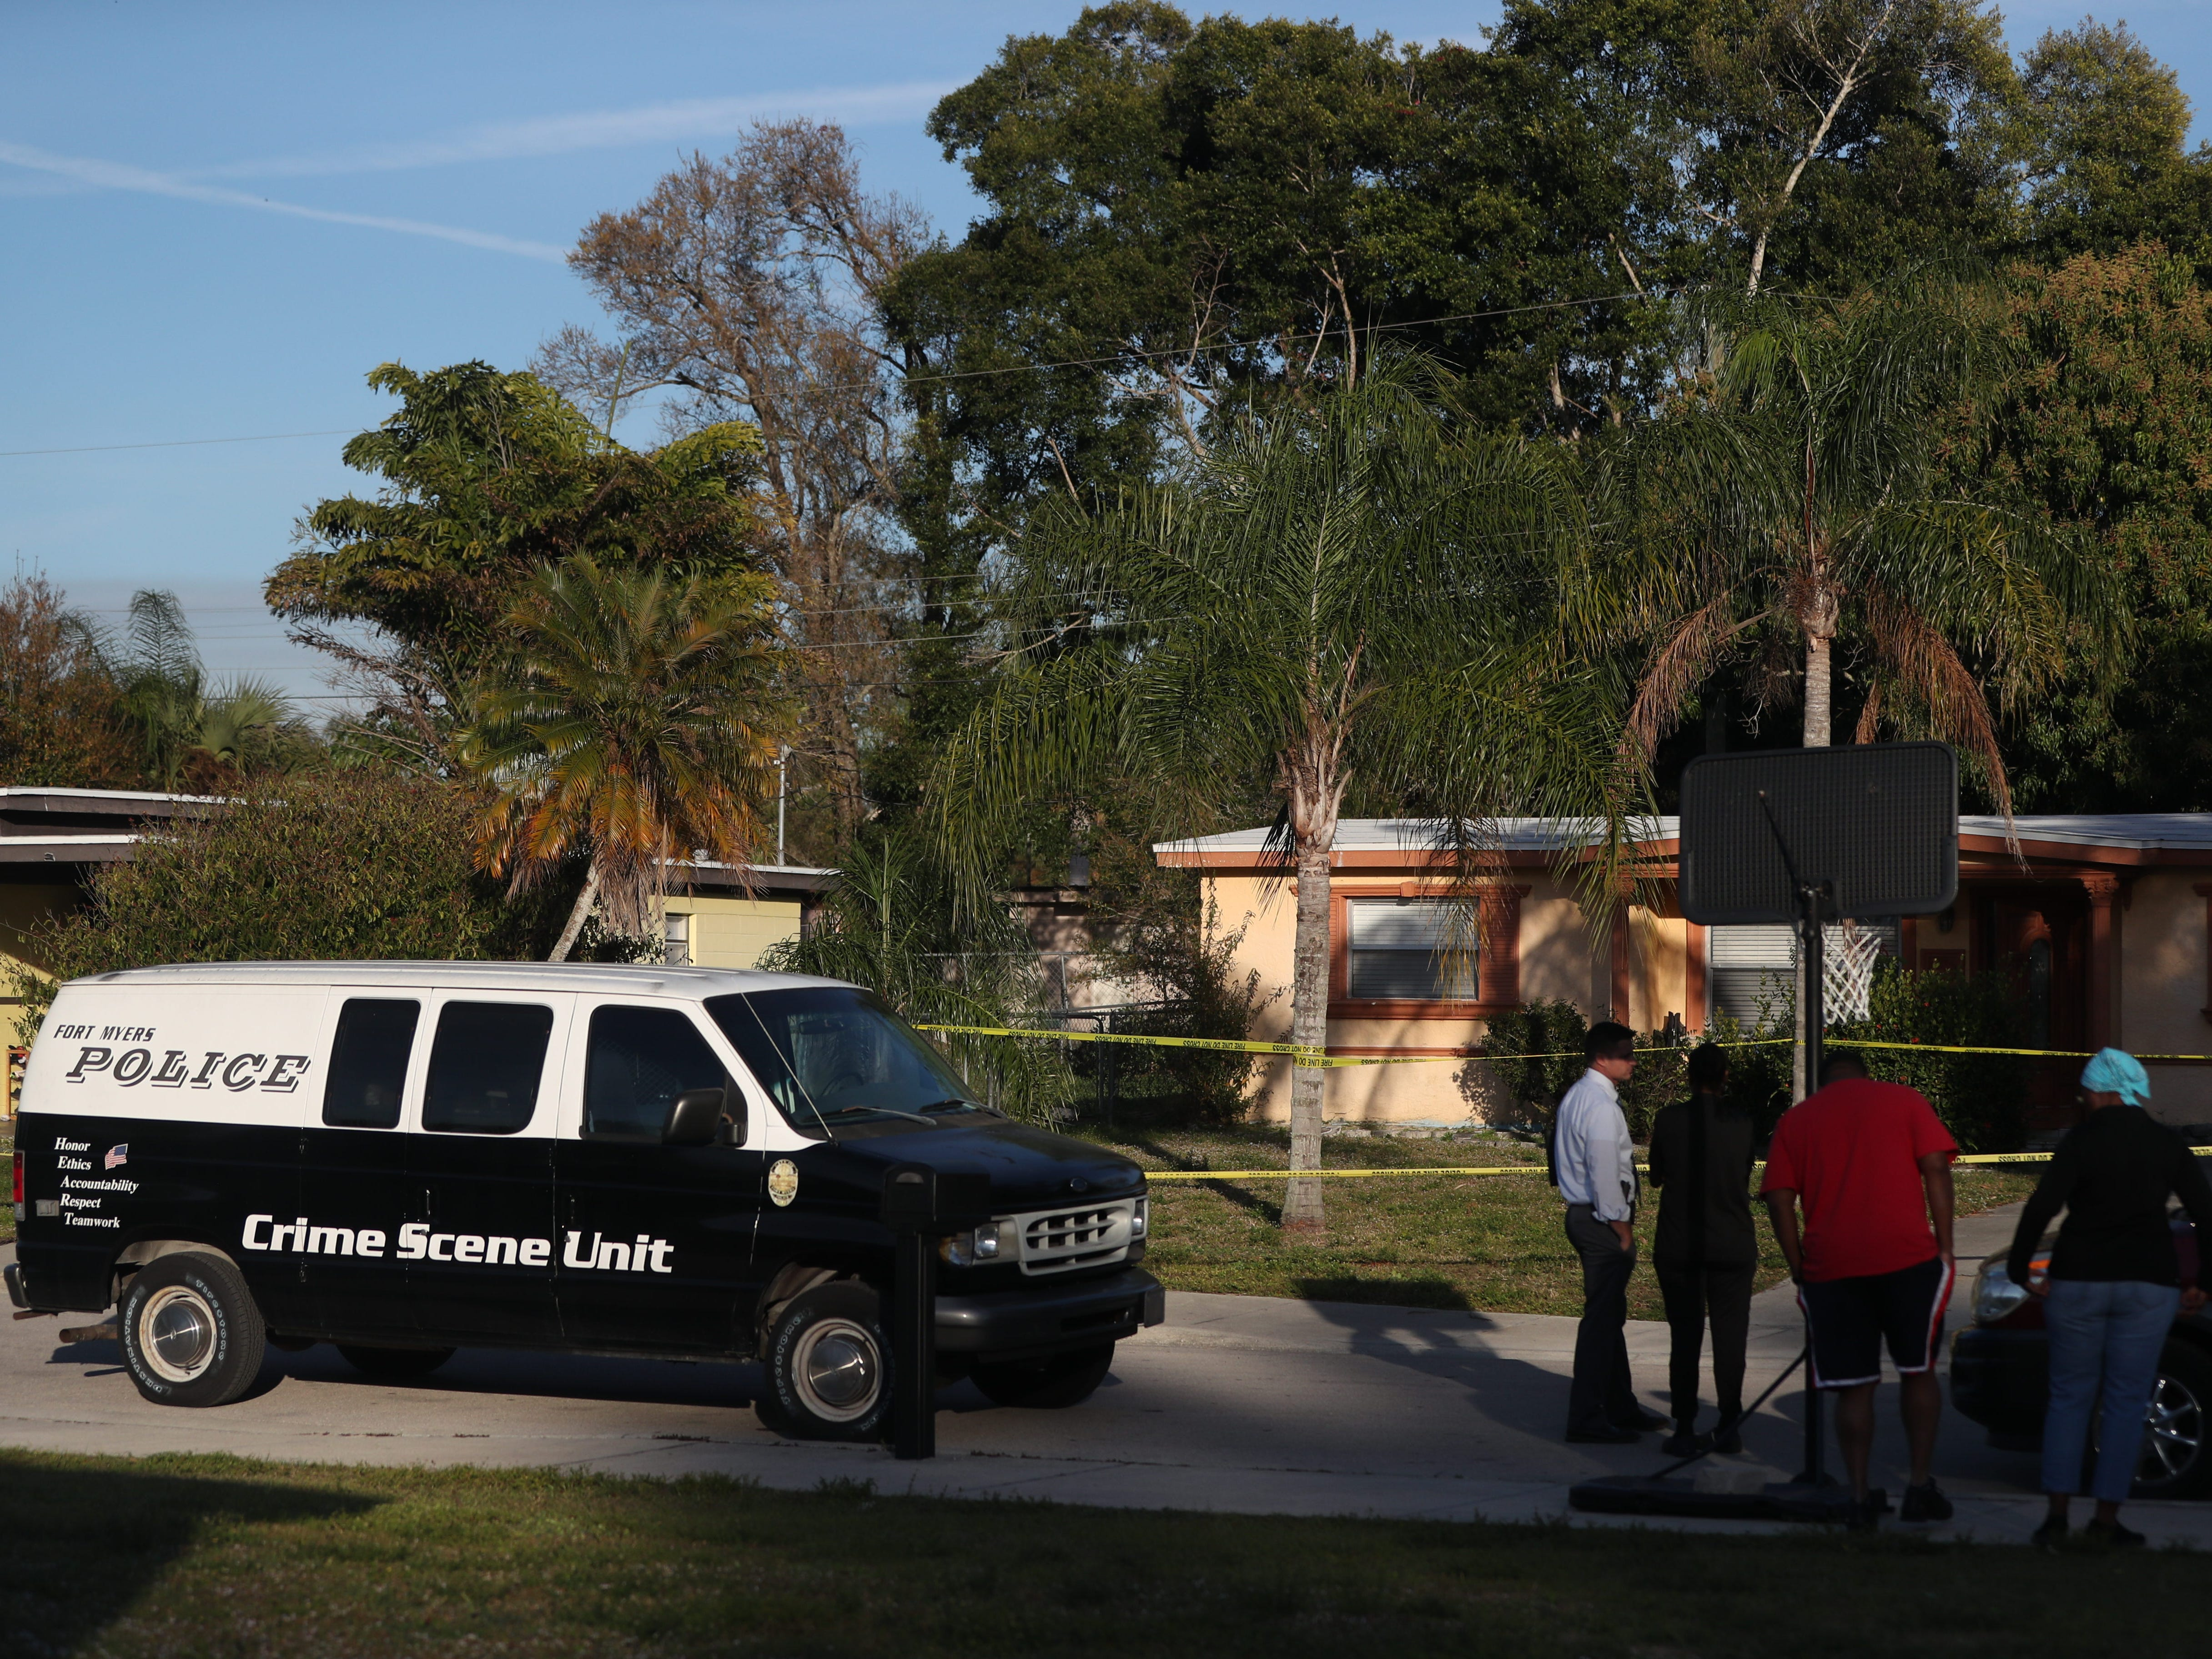 The Fort Myers Police Department processes the home where a mother and her 10-year-old son were found dead on Thursday. The Fort Myers Police Department has not provided the cause of death and are still investigating.